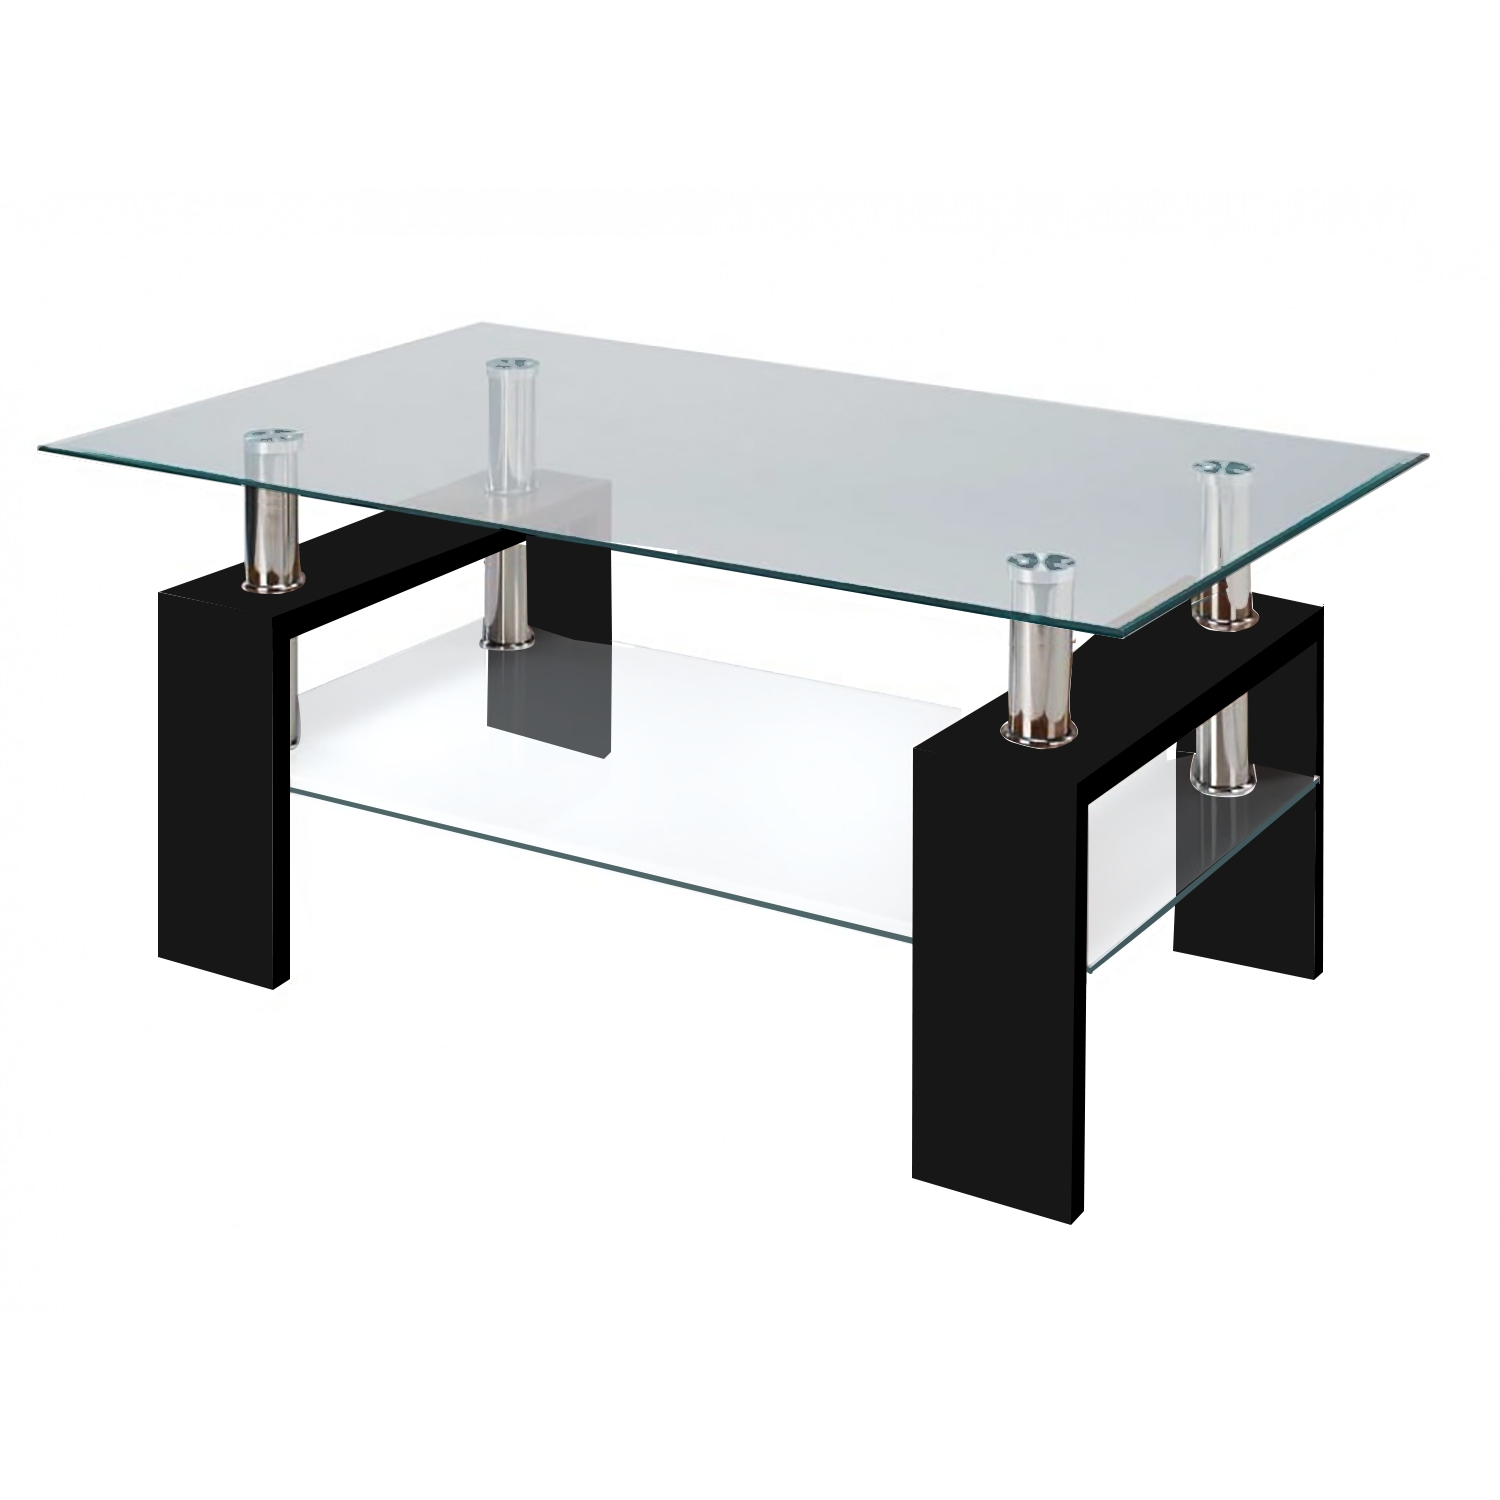 Modern Glass Black Coffee Table With Shelf Contemporary throughout Desk Coffee Tables (Image 18 of 30)